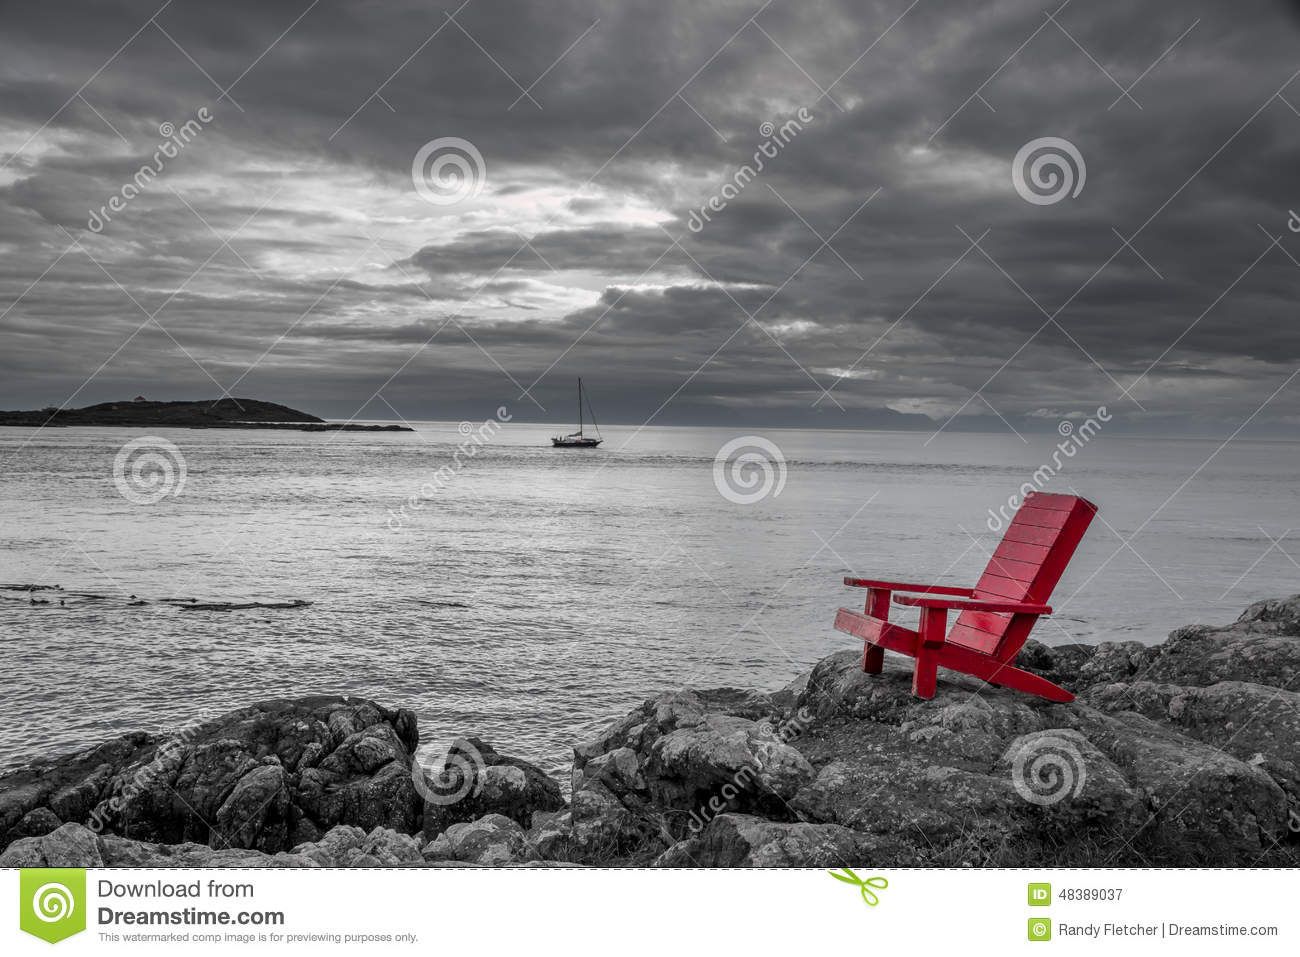 Red adirondack chair contrasts with a stormy black and white ocean